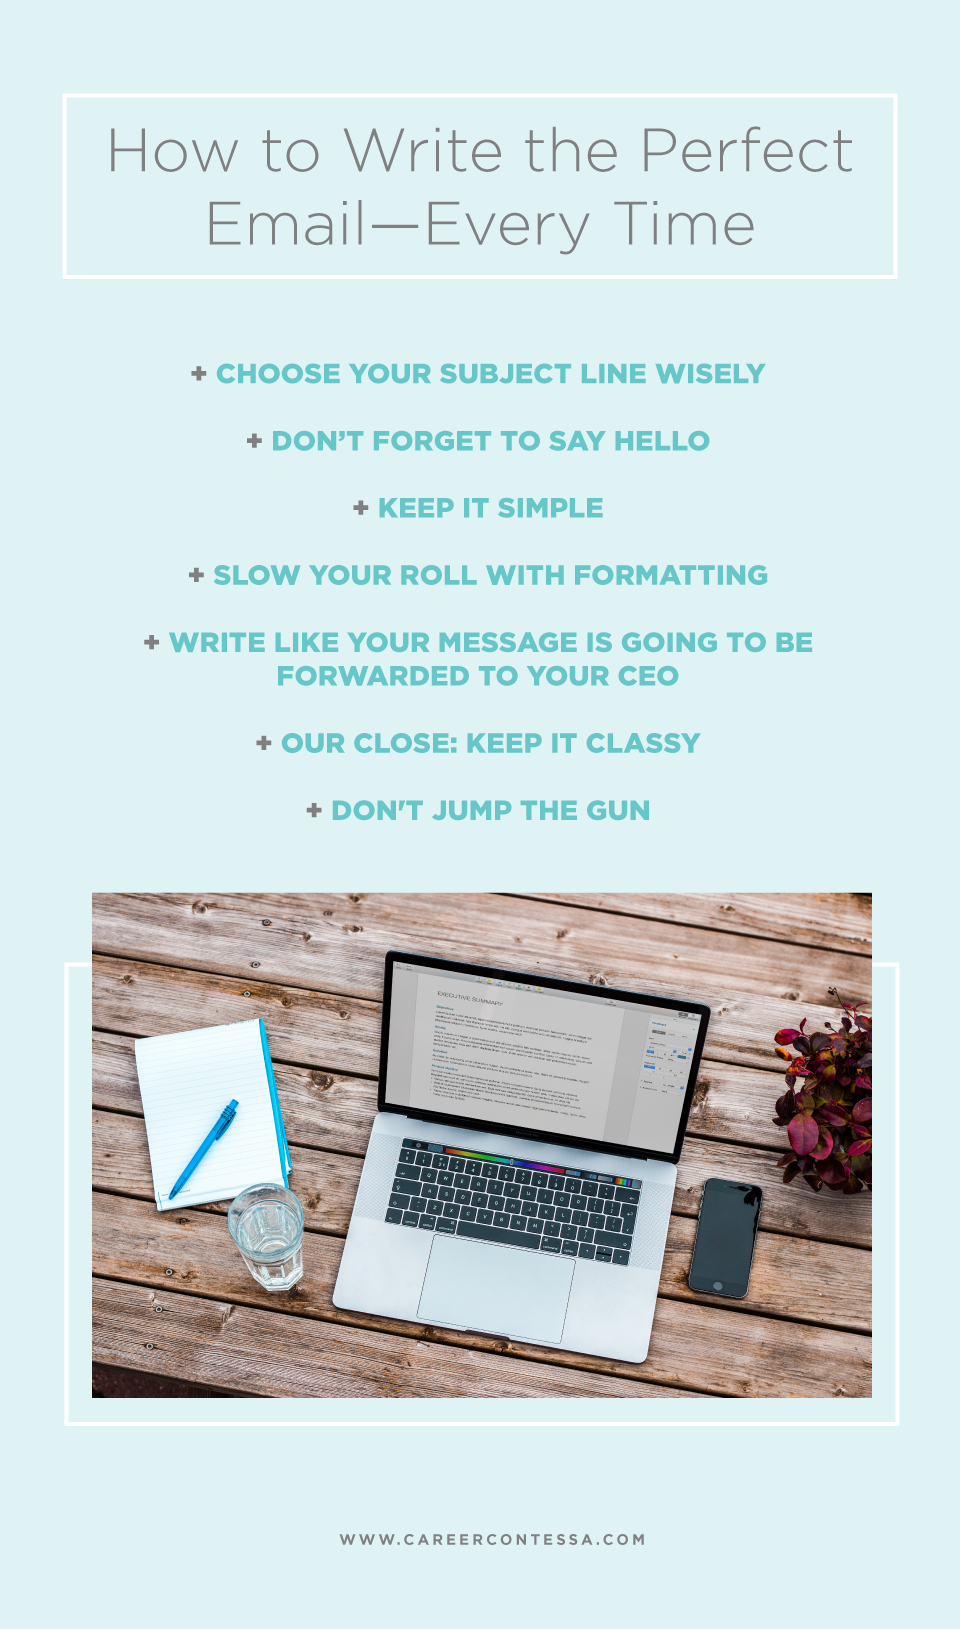 Write the Perfect Email